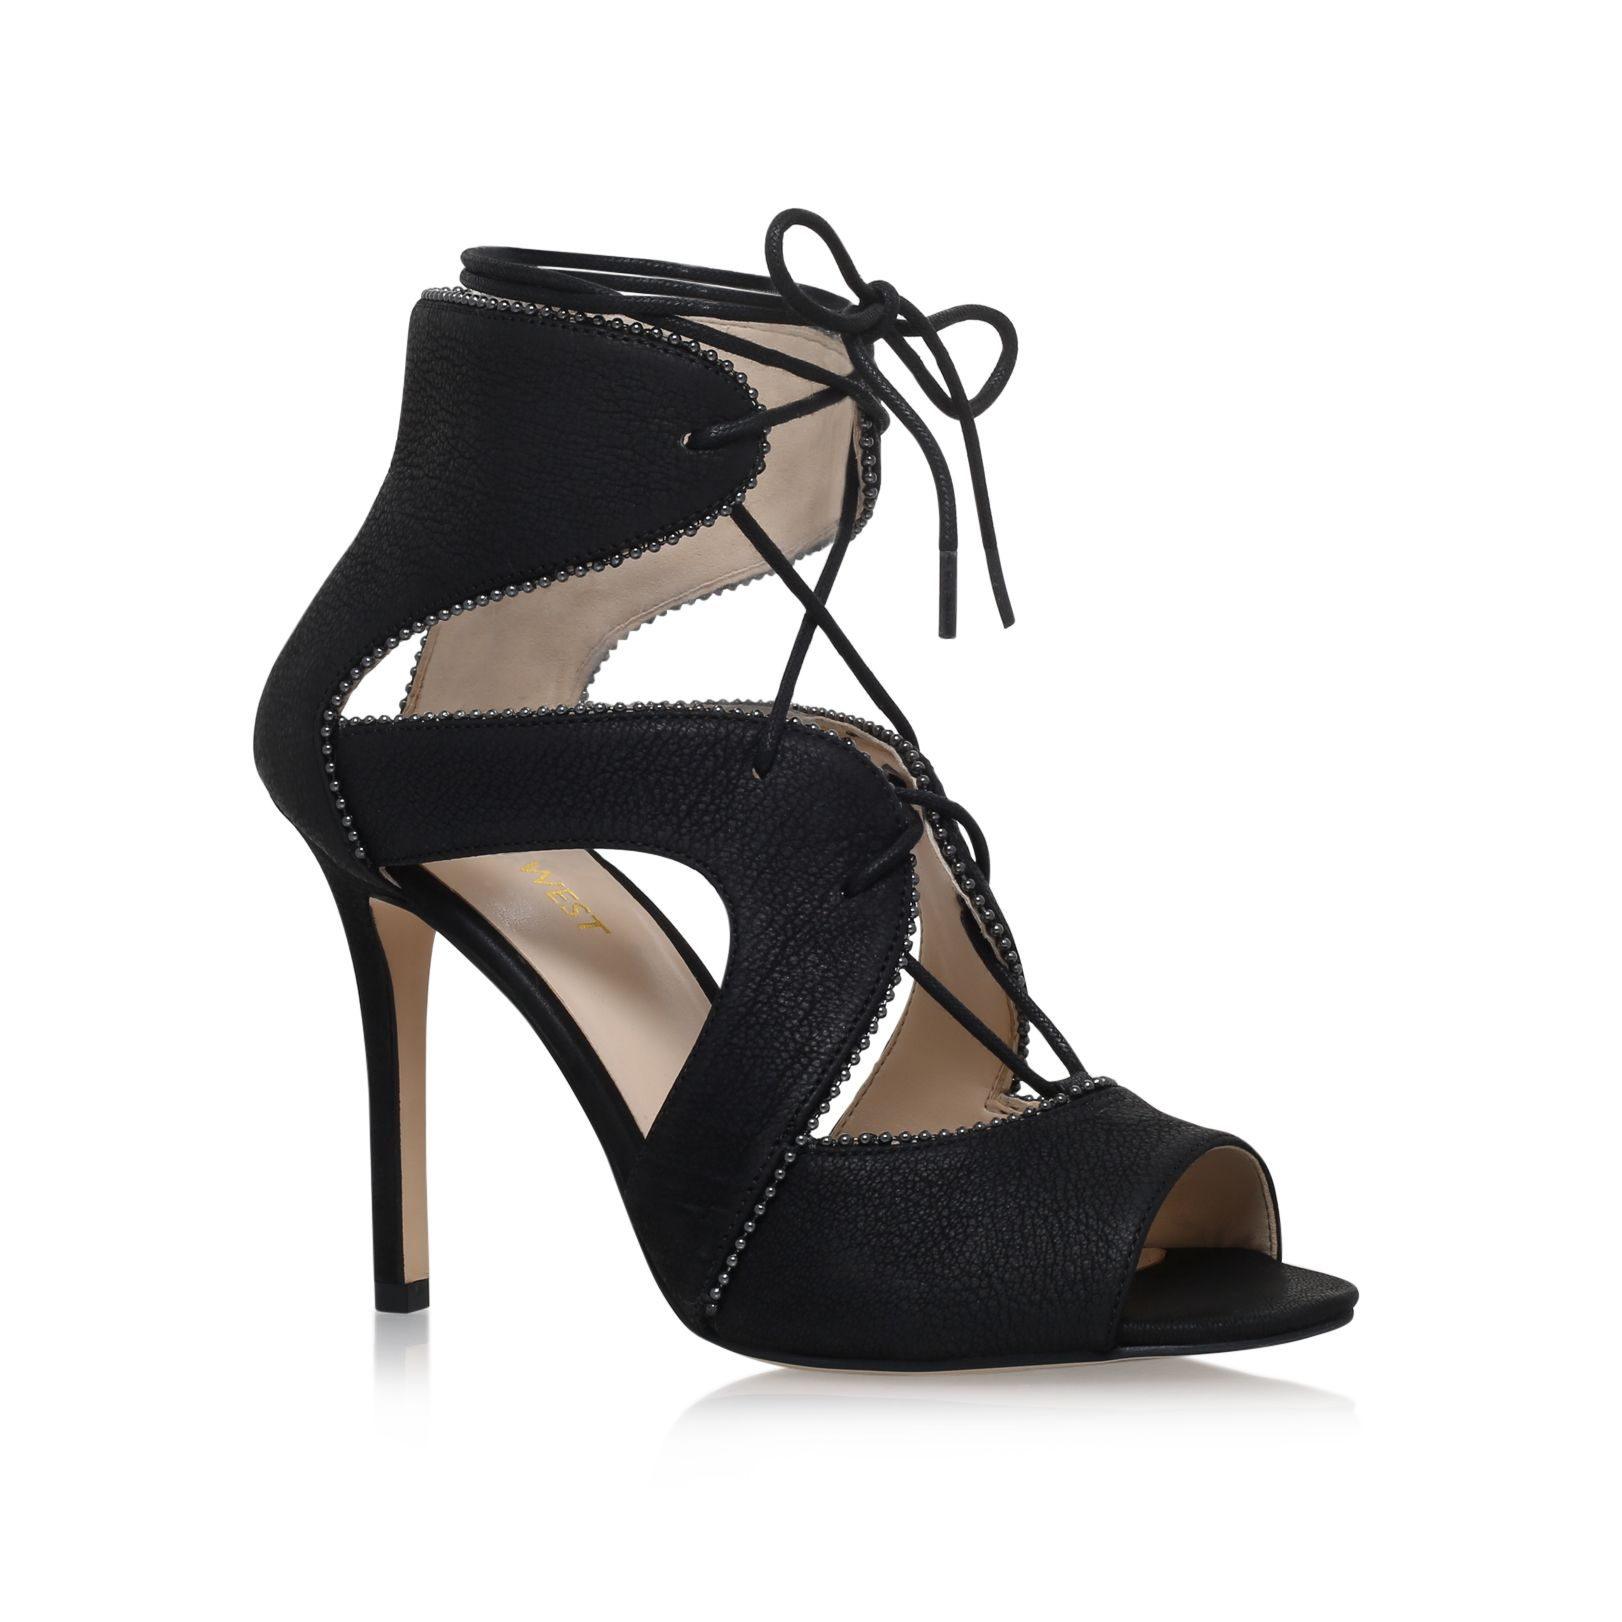 Nine West Nine West Ulimah high heel sandals, Black